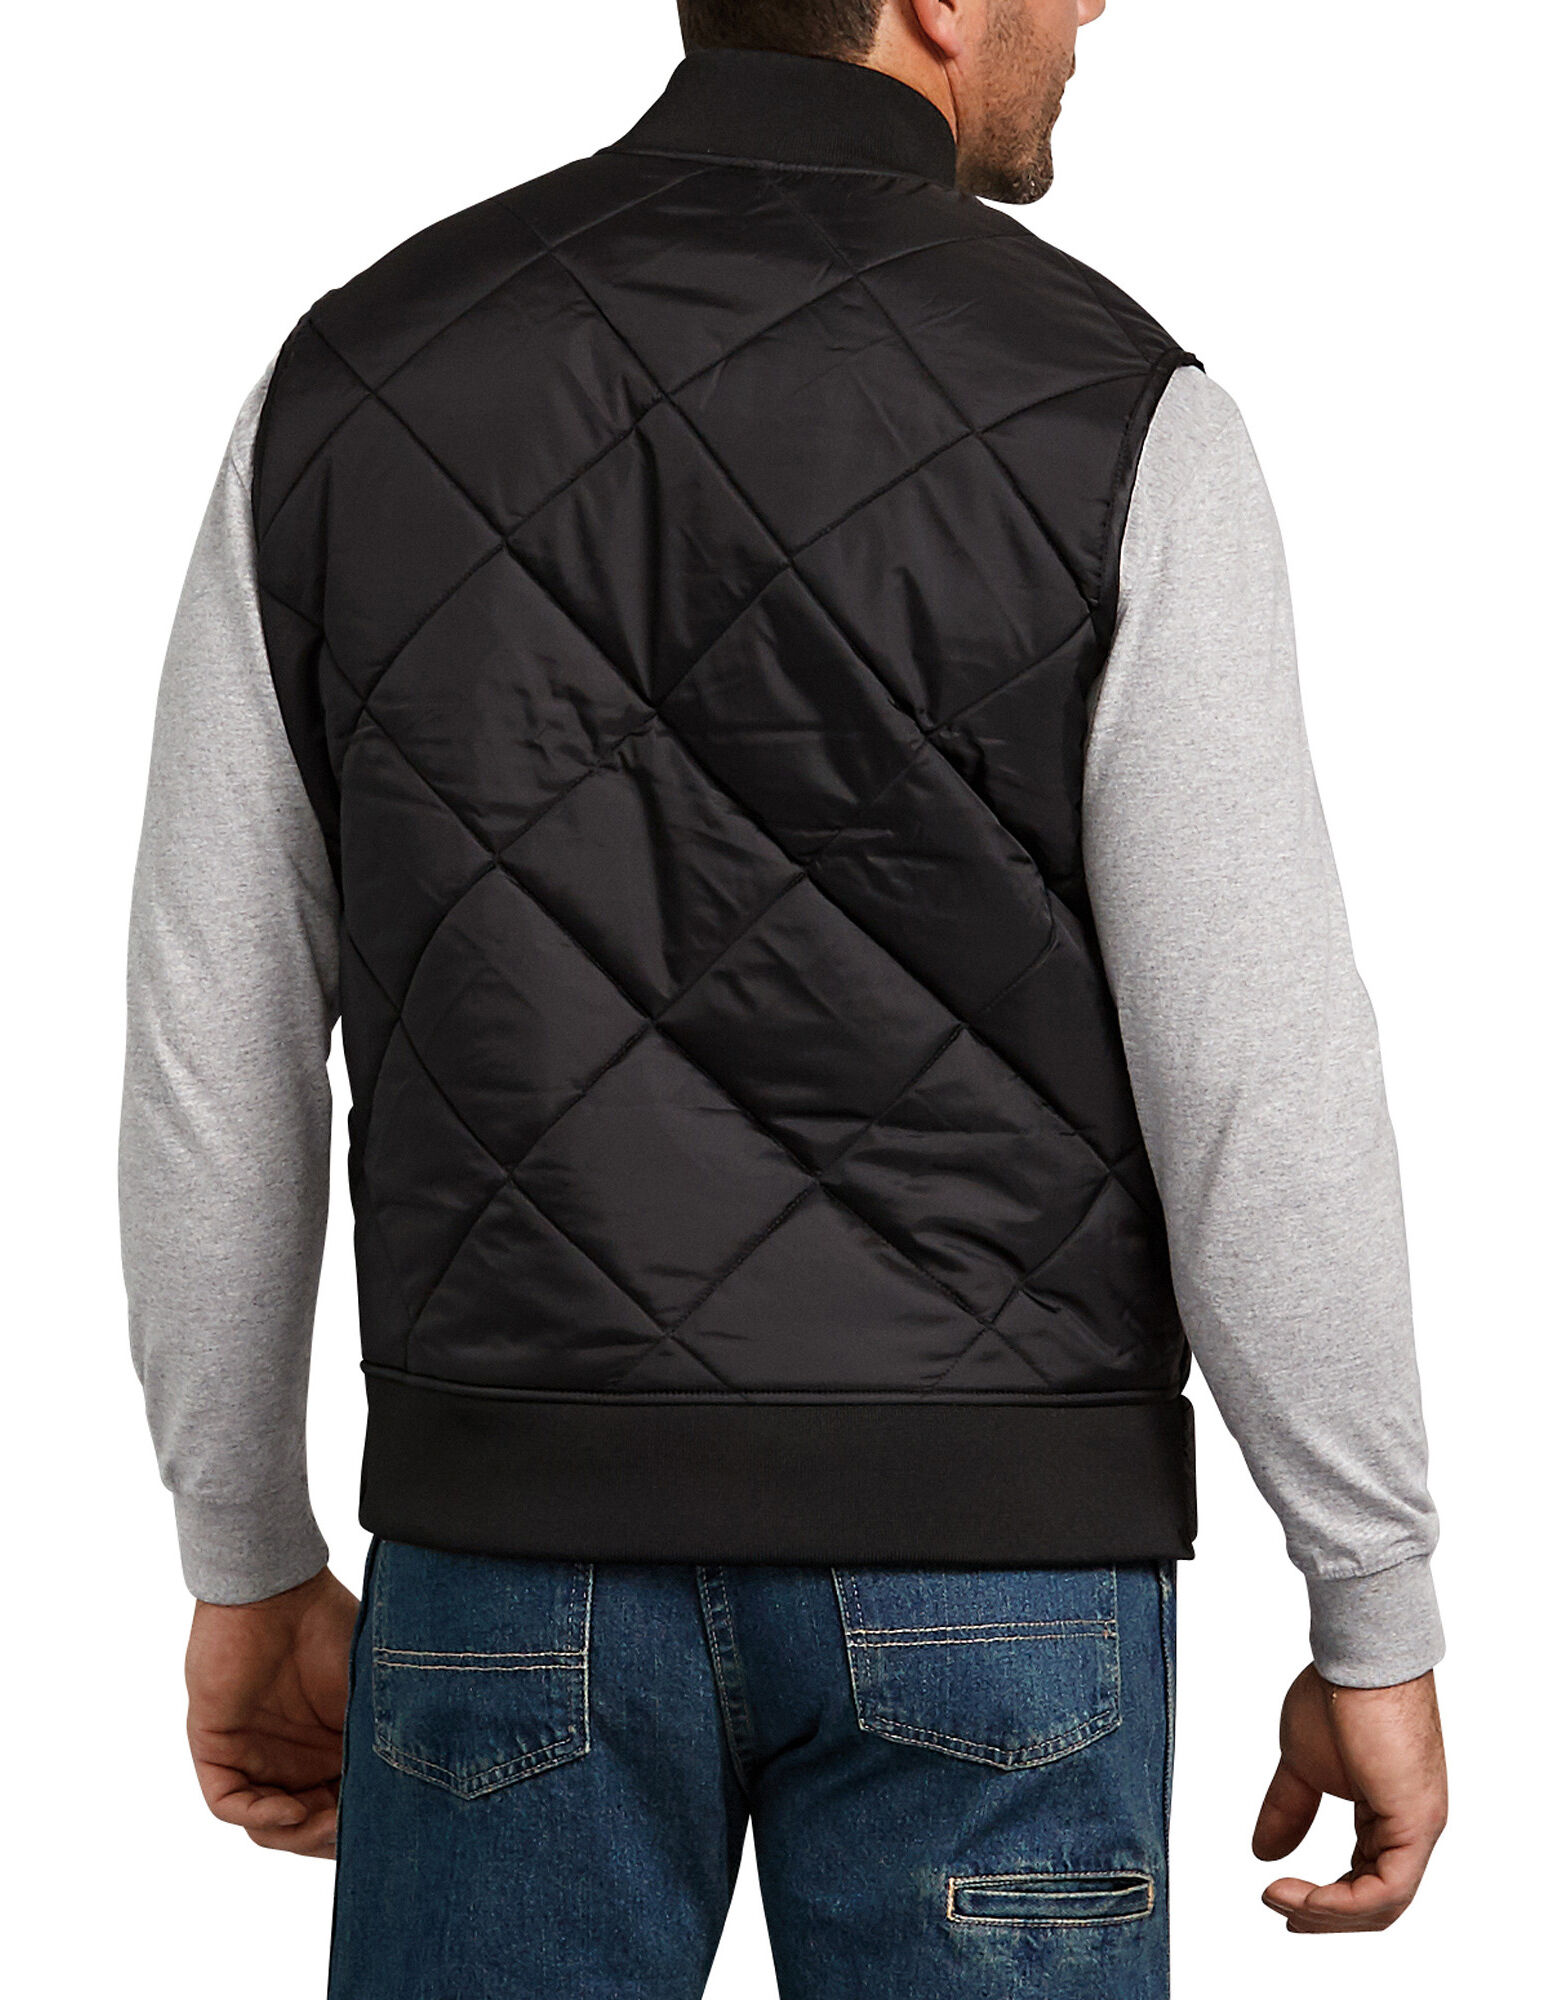 Mens Nylon Vests 23